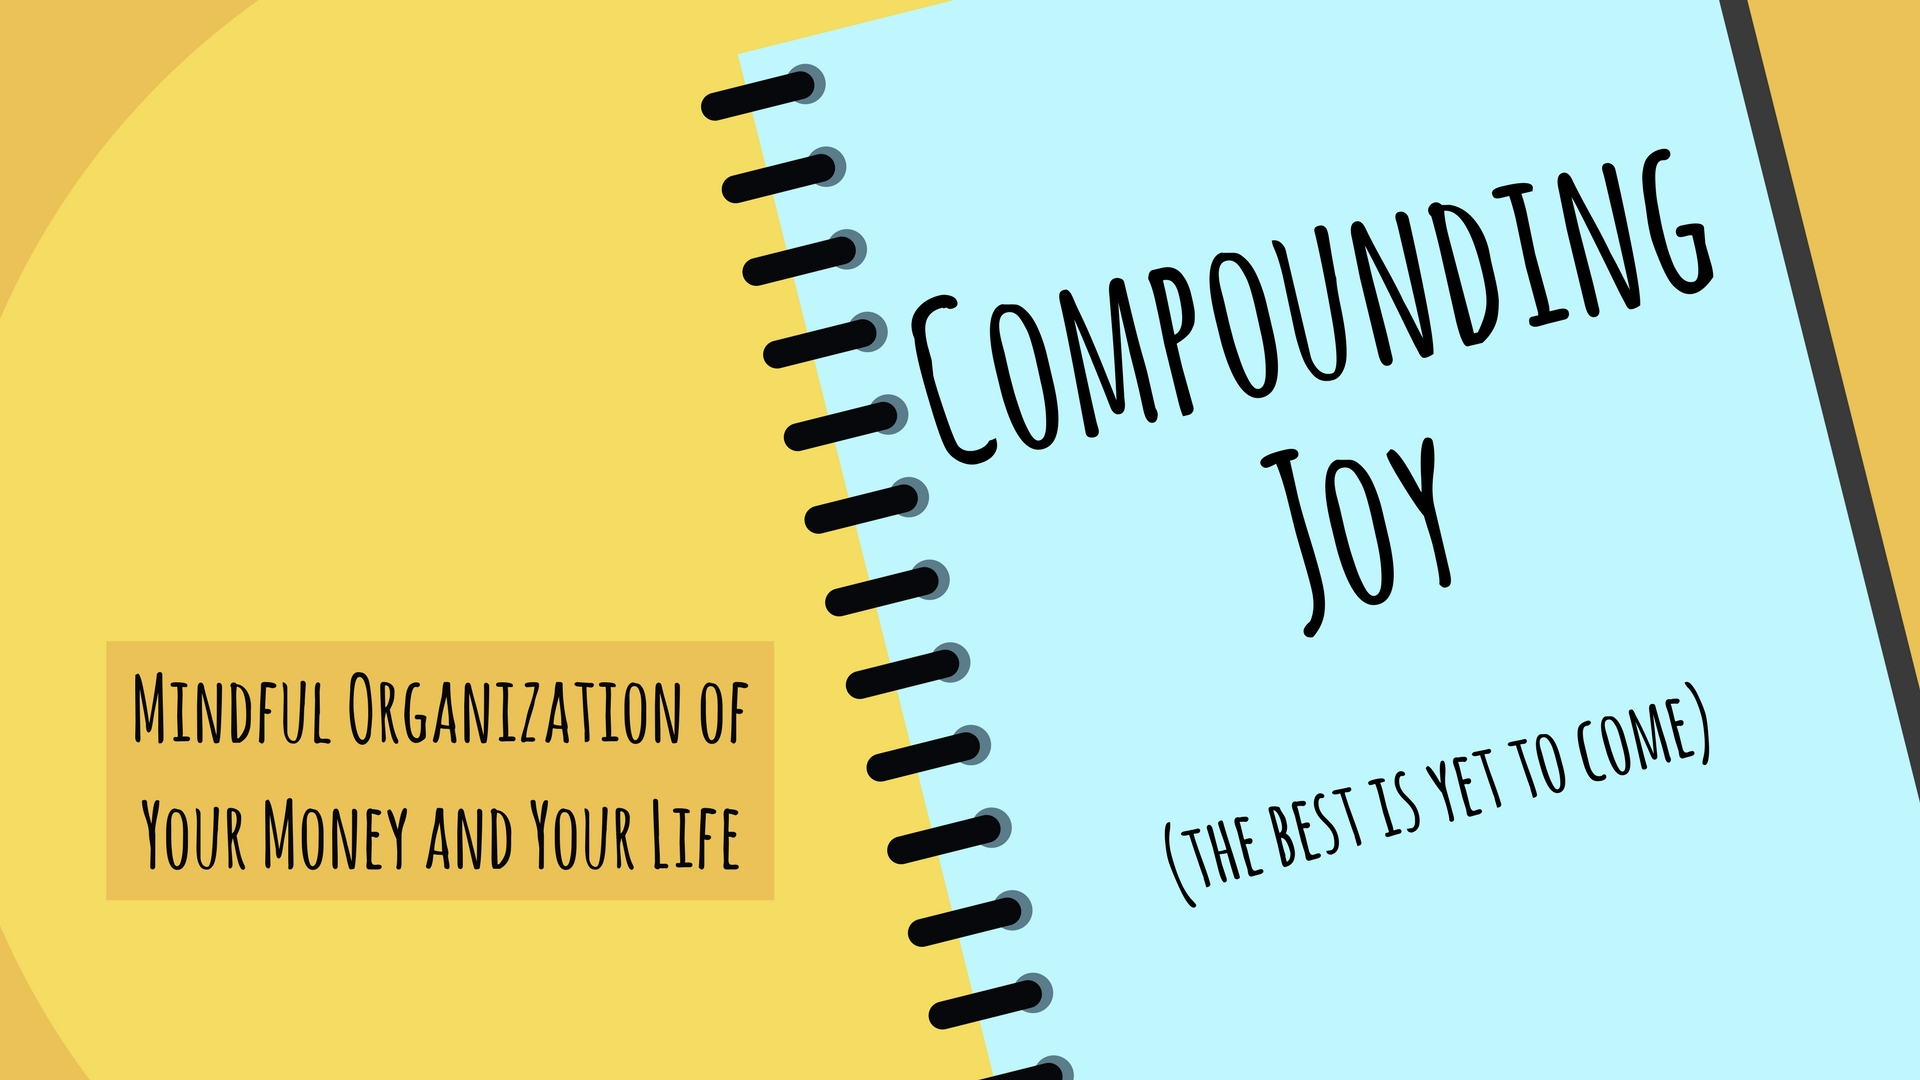 mindful organization of your money and your life | compounding joy | living a mindful and purposeful life